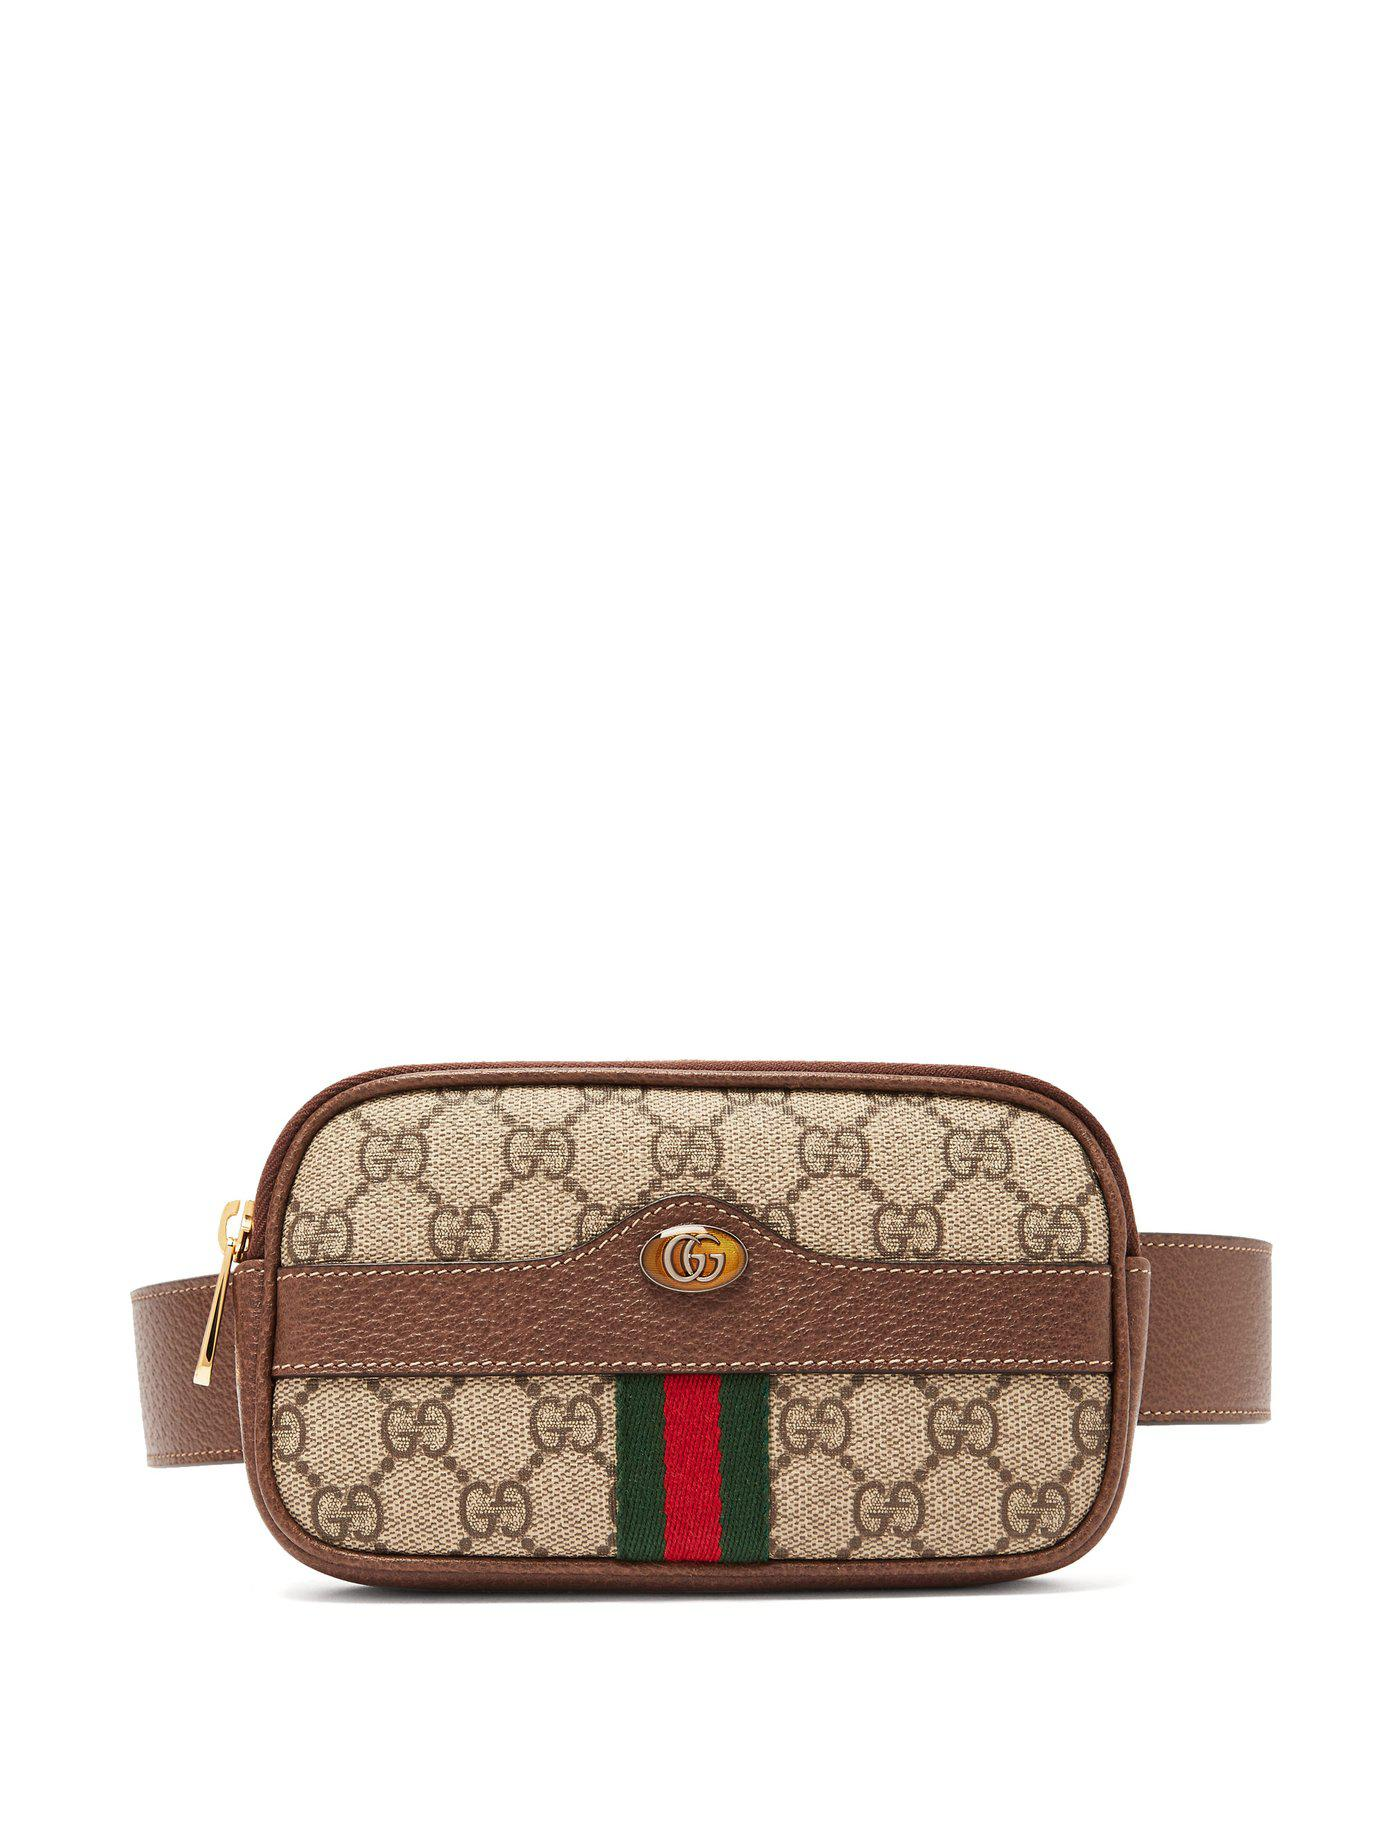 44b907772a0 Gucci Ophidia Gg Supreme Iphone® Belt Bag in Brown - Lyst